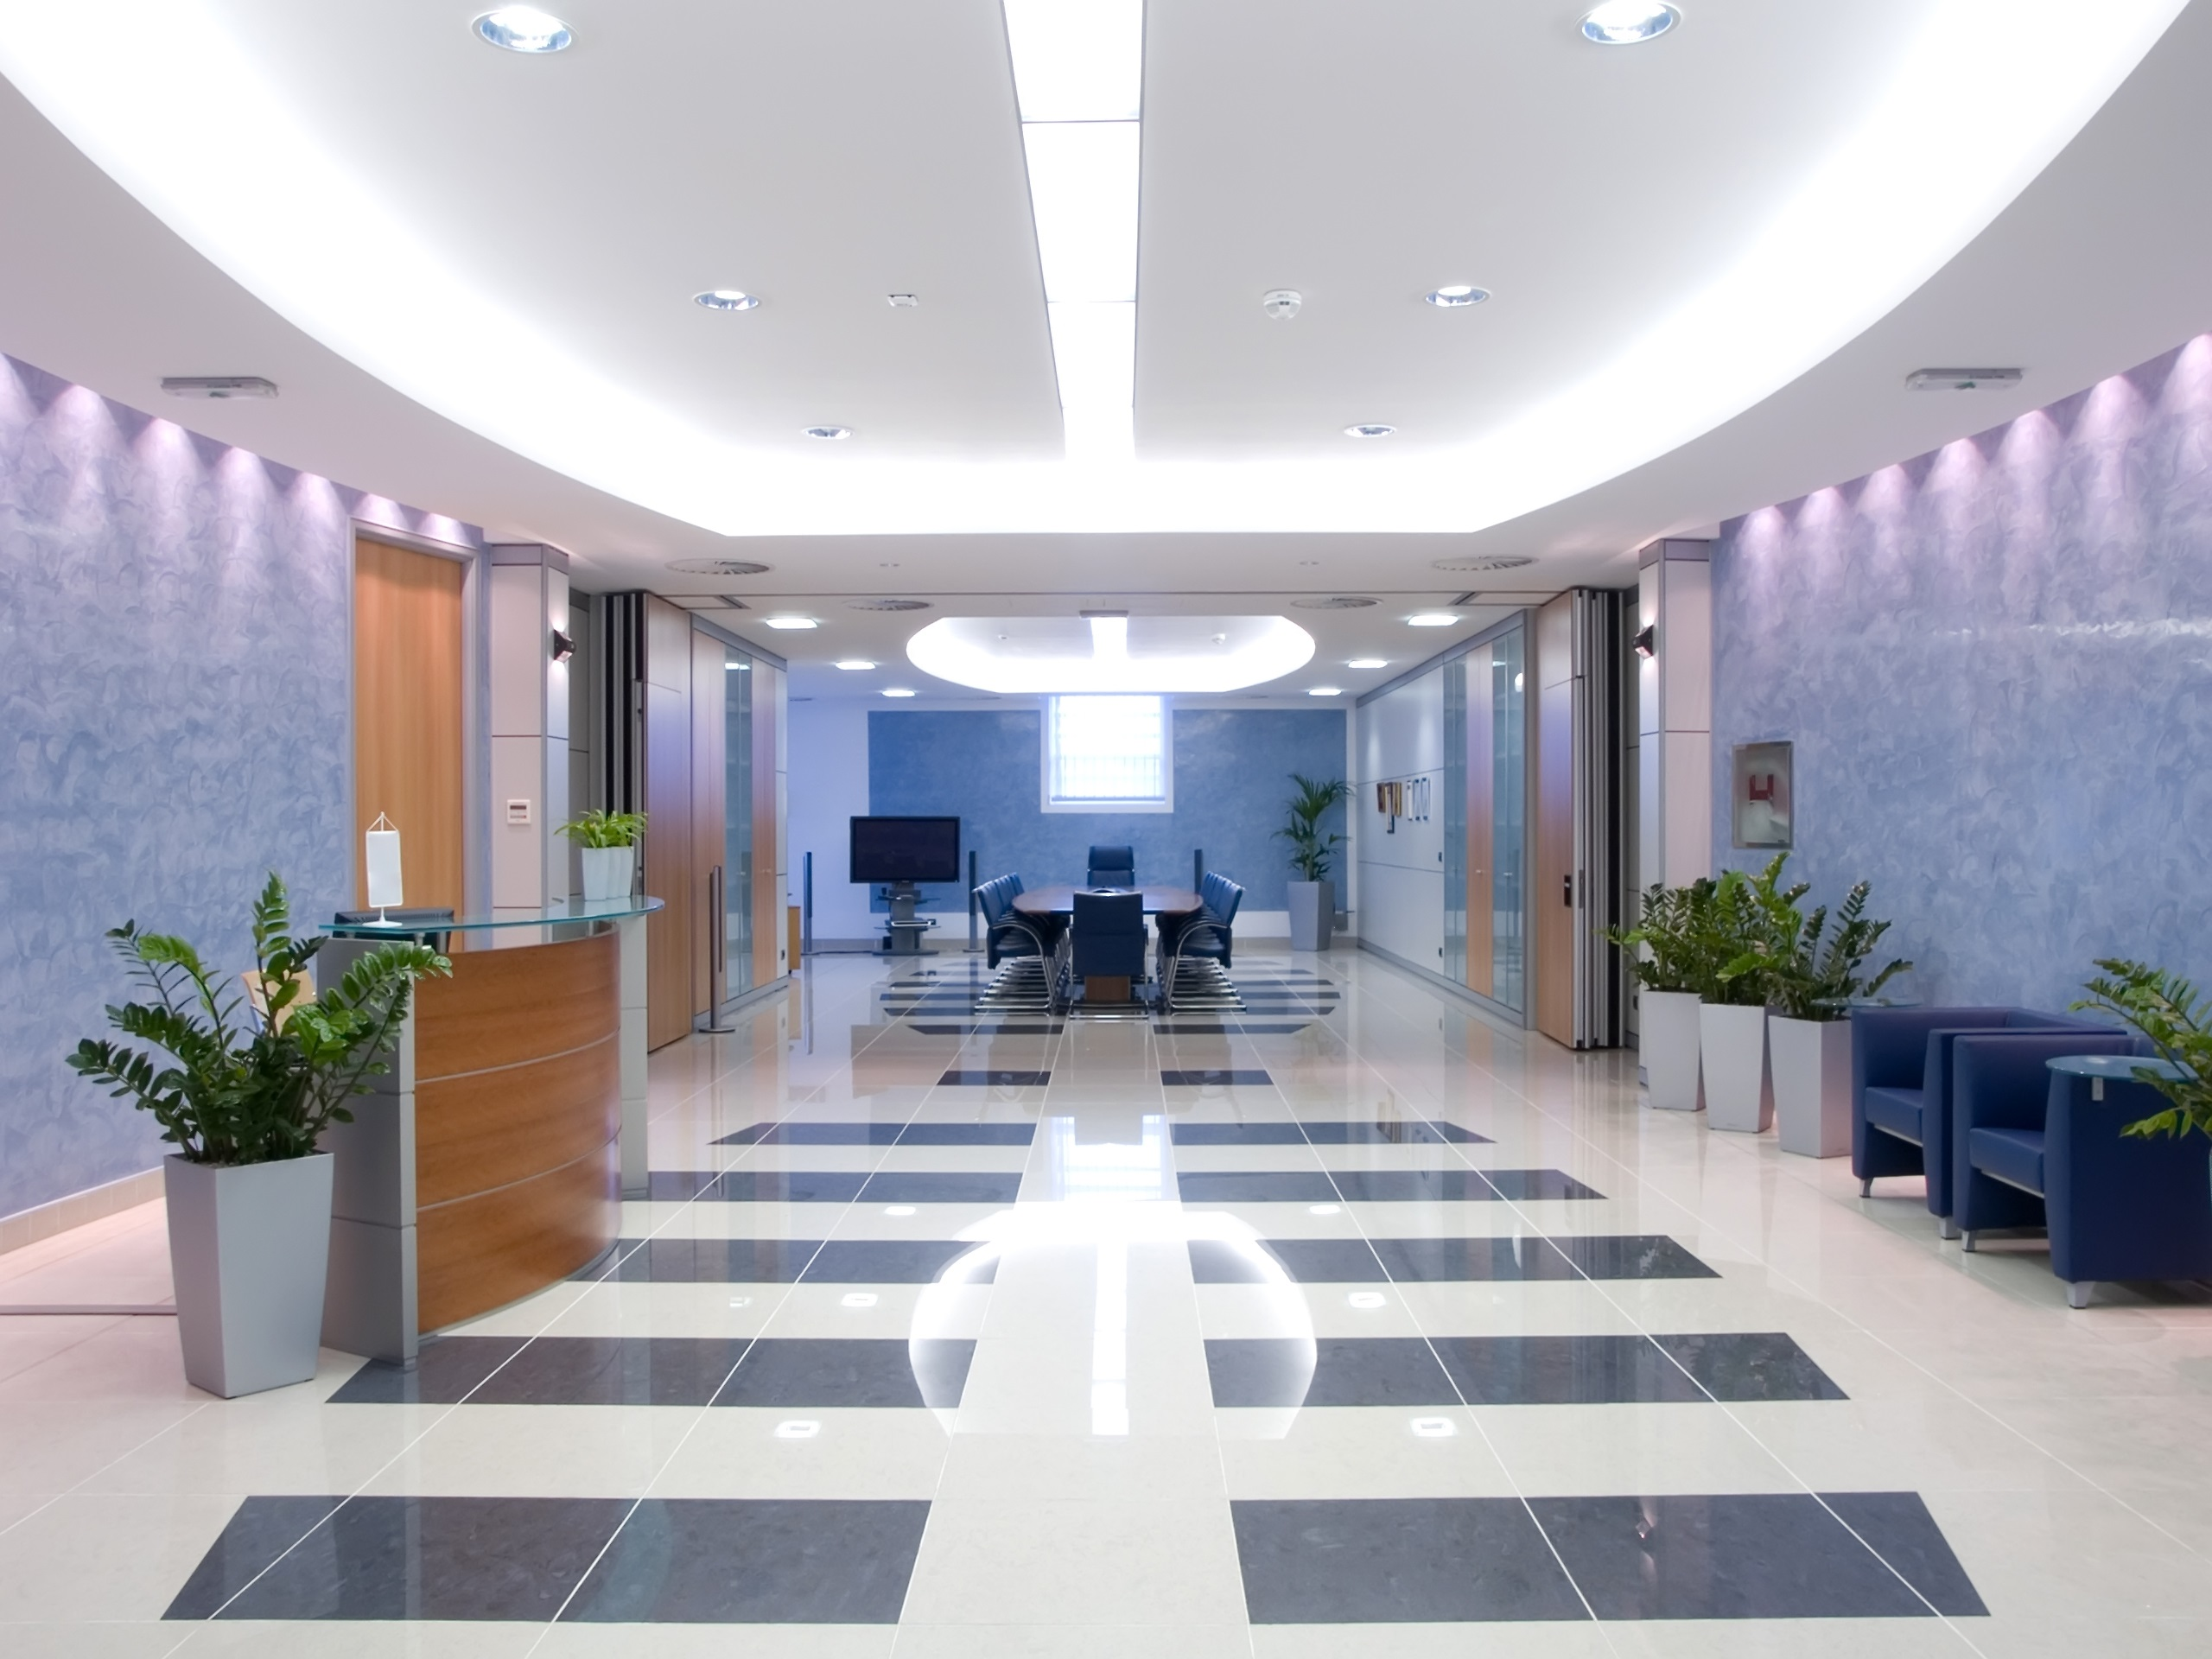 shutterstock_11381599._shiny_office_lobby_floor